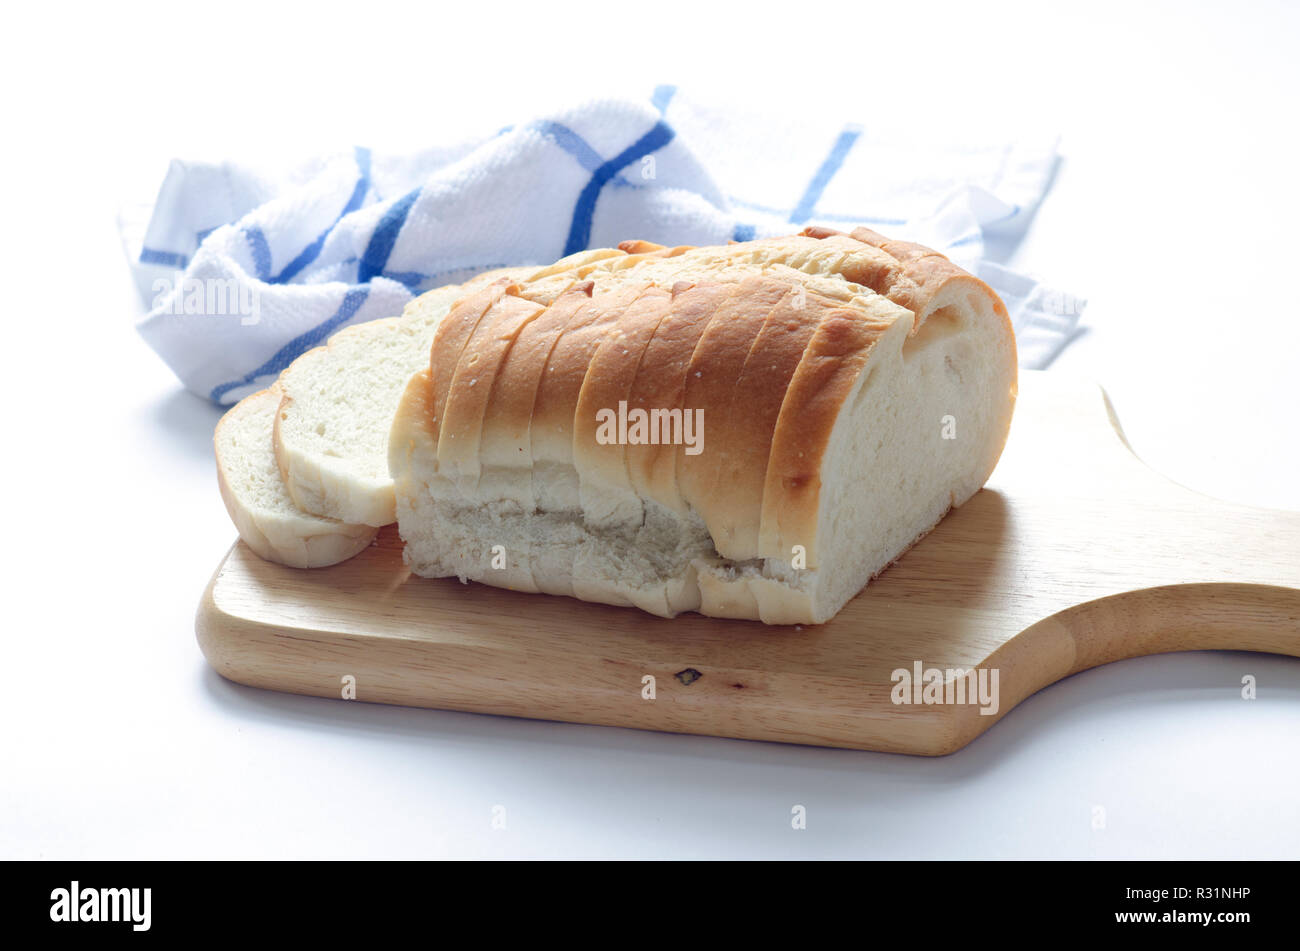 Loaf of sliced italian white bread on wood cutting board - Stock Image